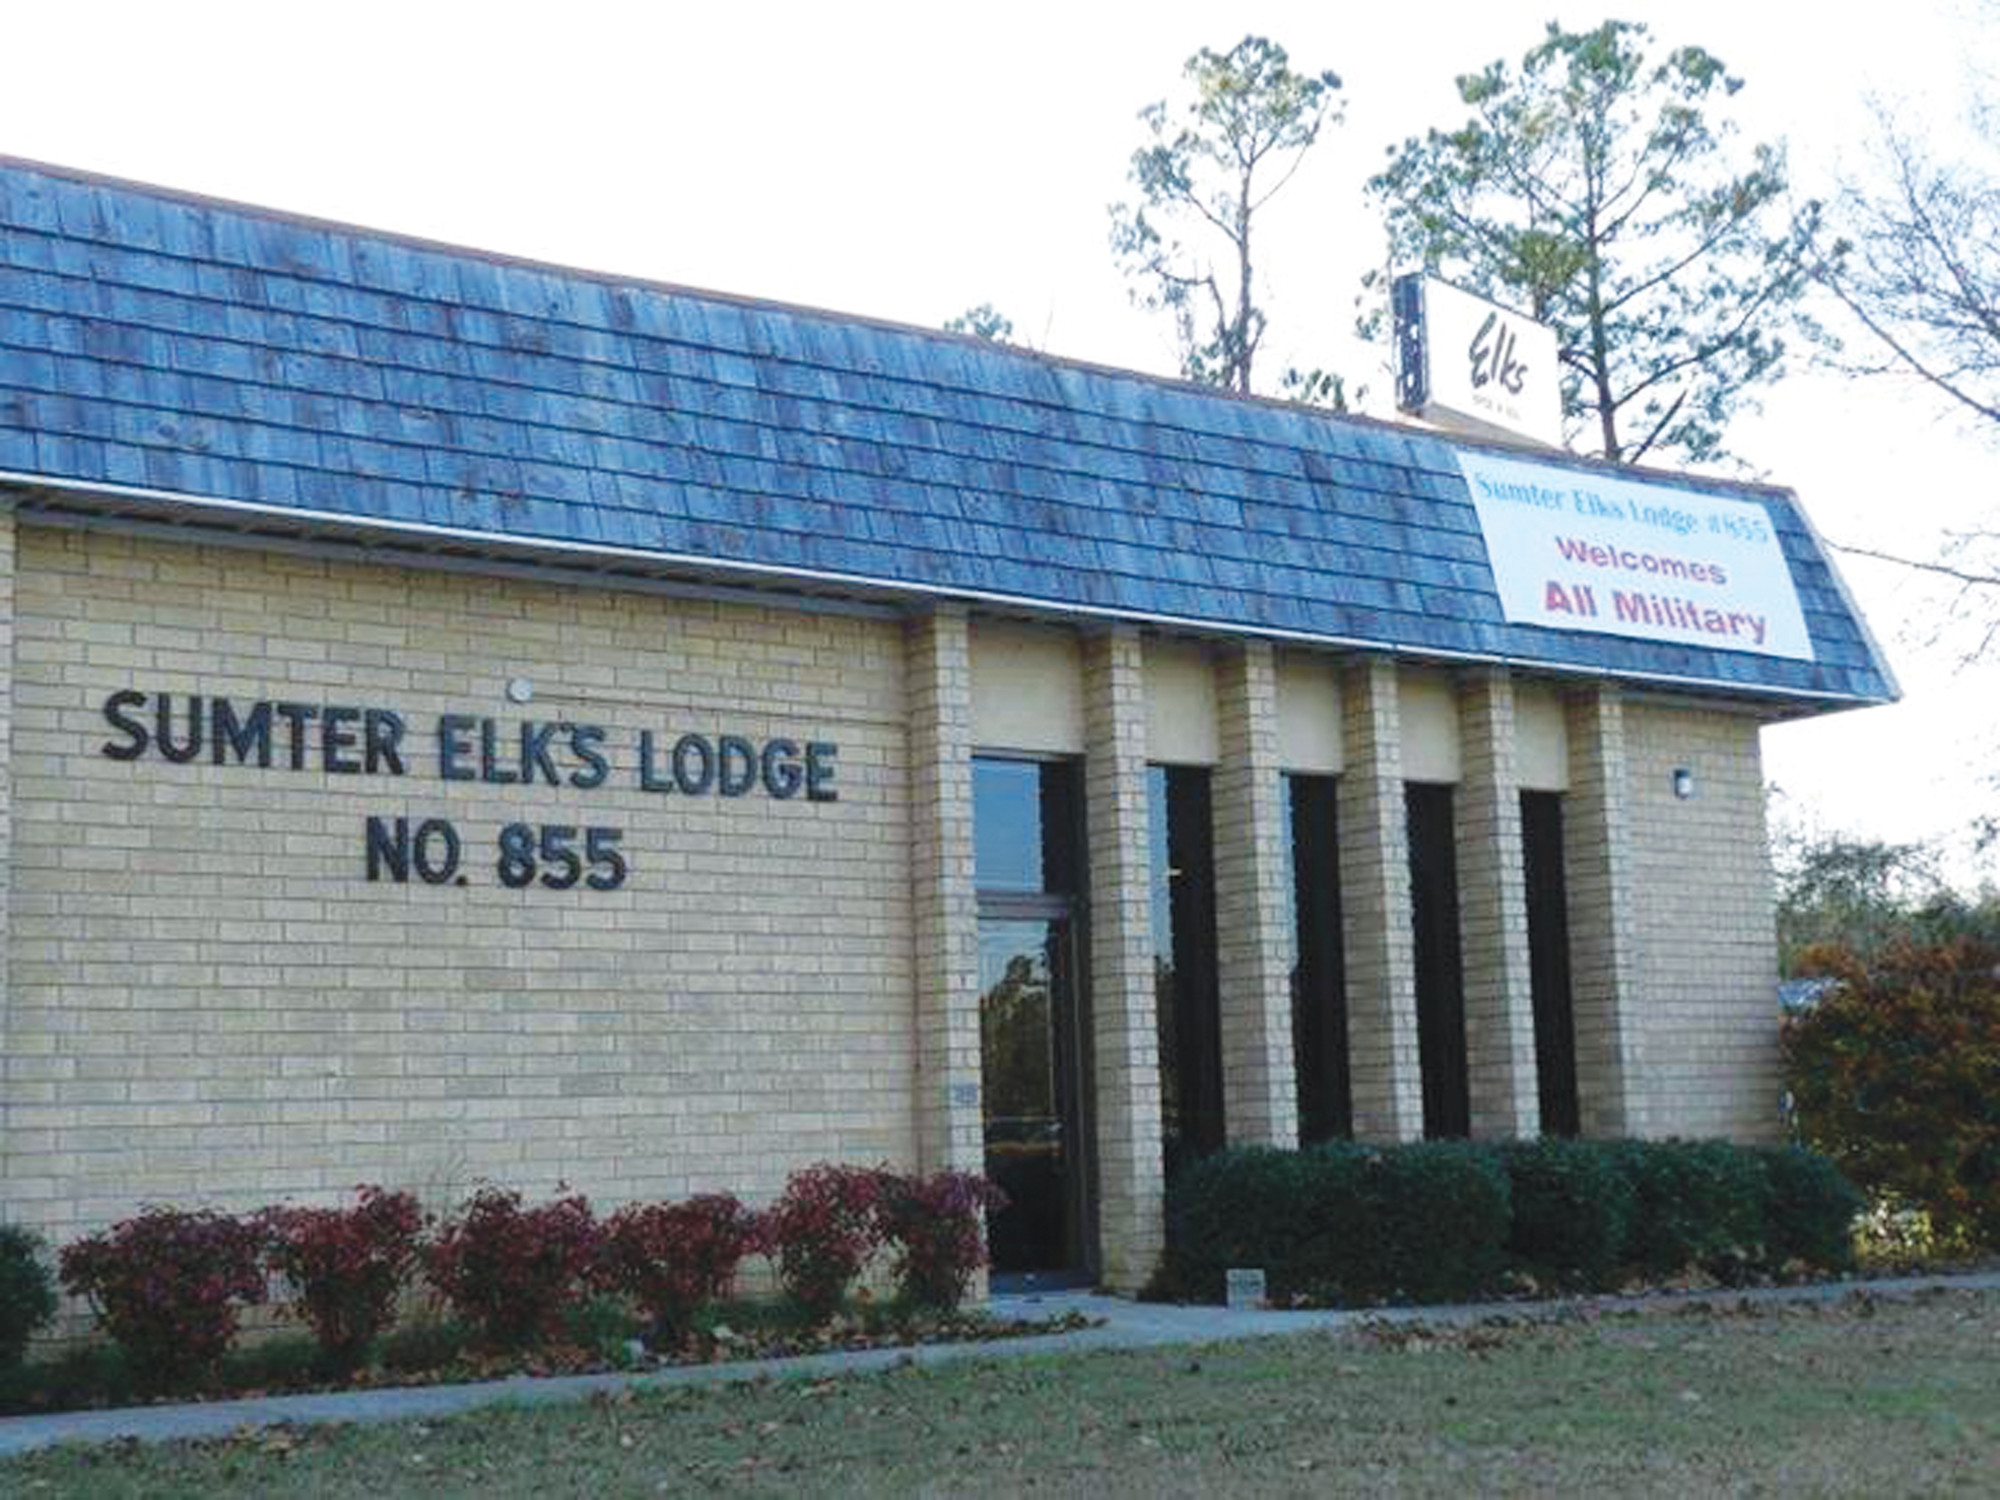 PHOTOS PROVIDEDElks Lodge 855 was founded in 1903, with members focusing on service to the community.